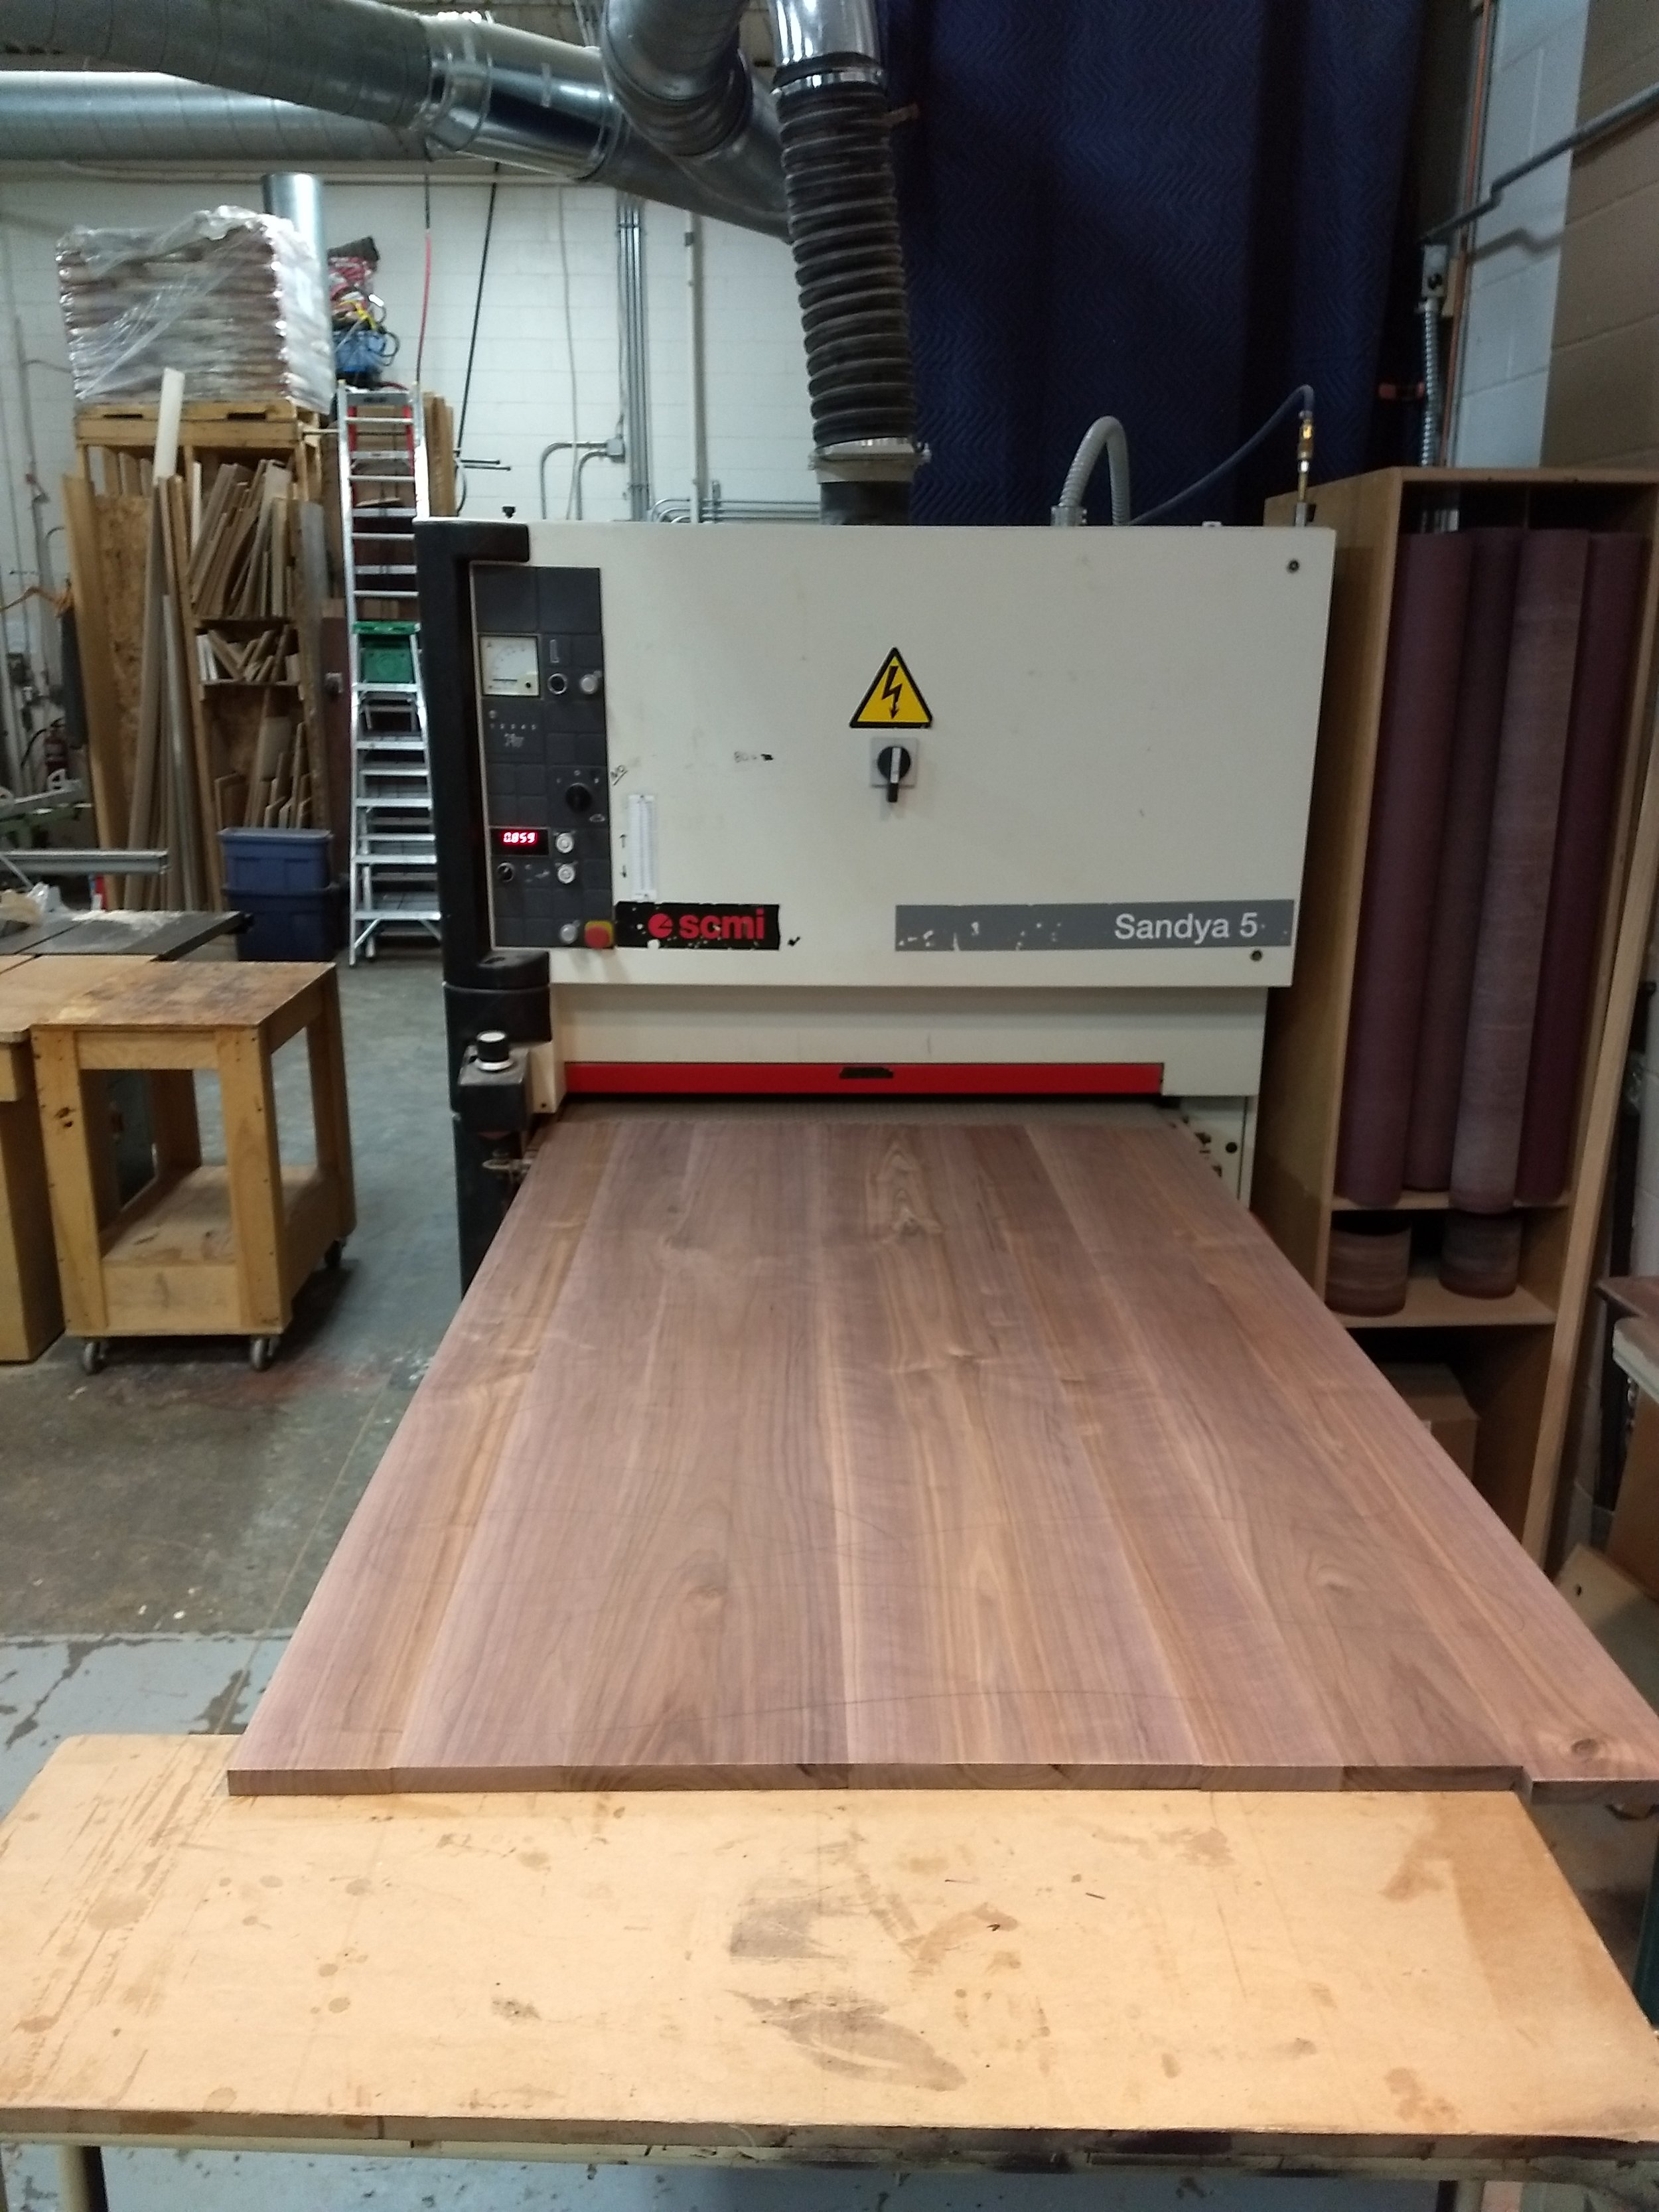 Top going into sander